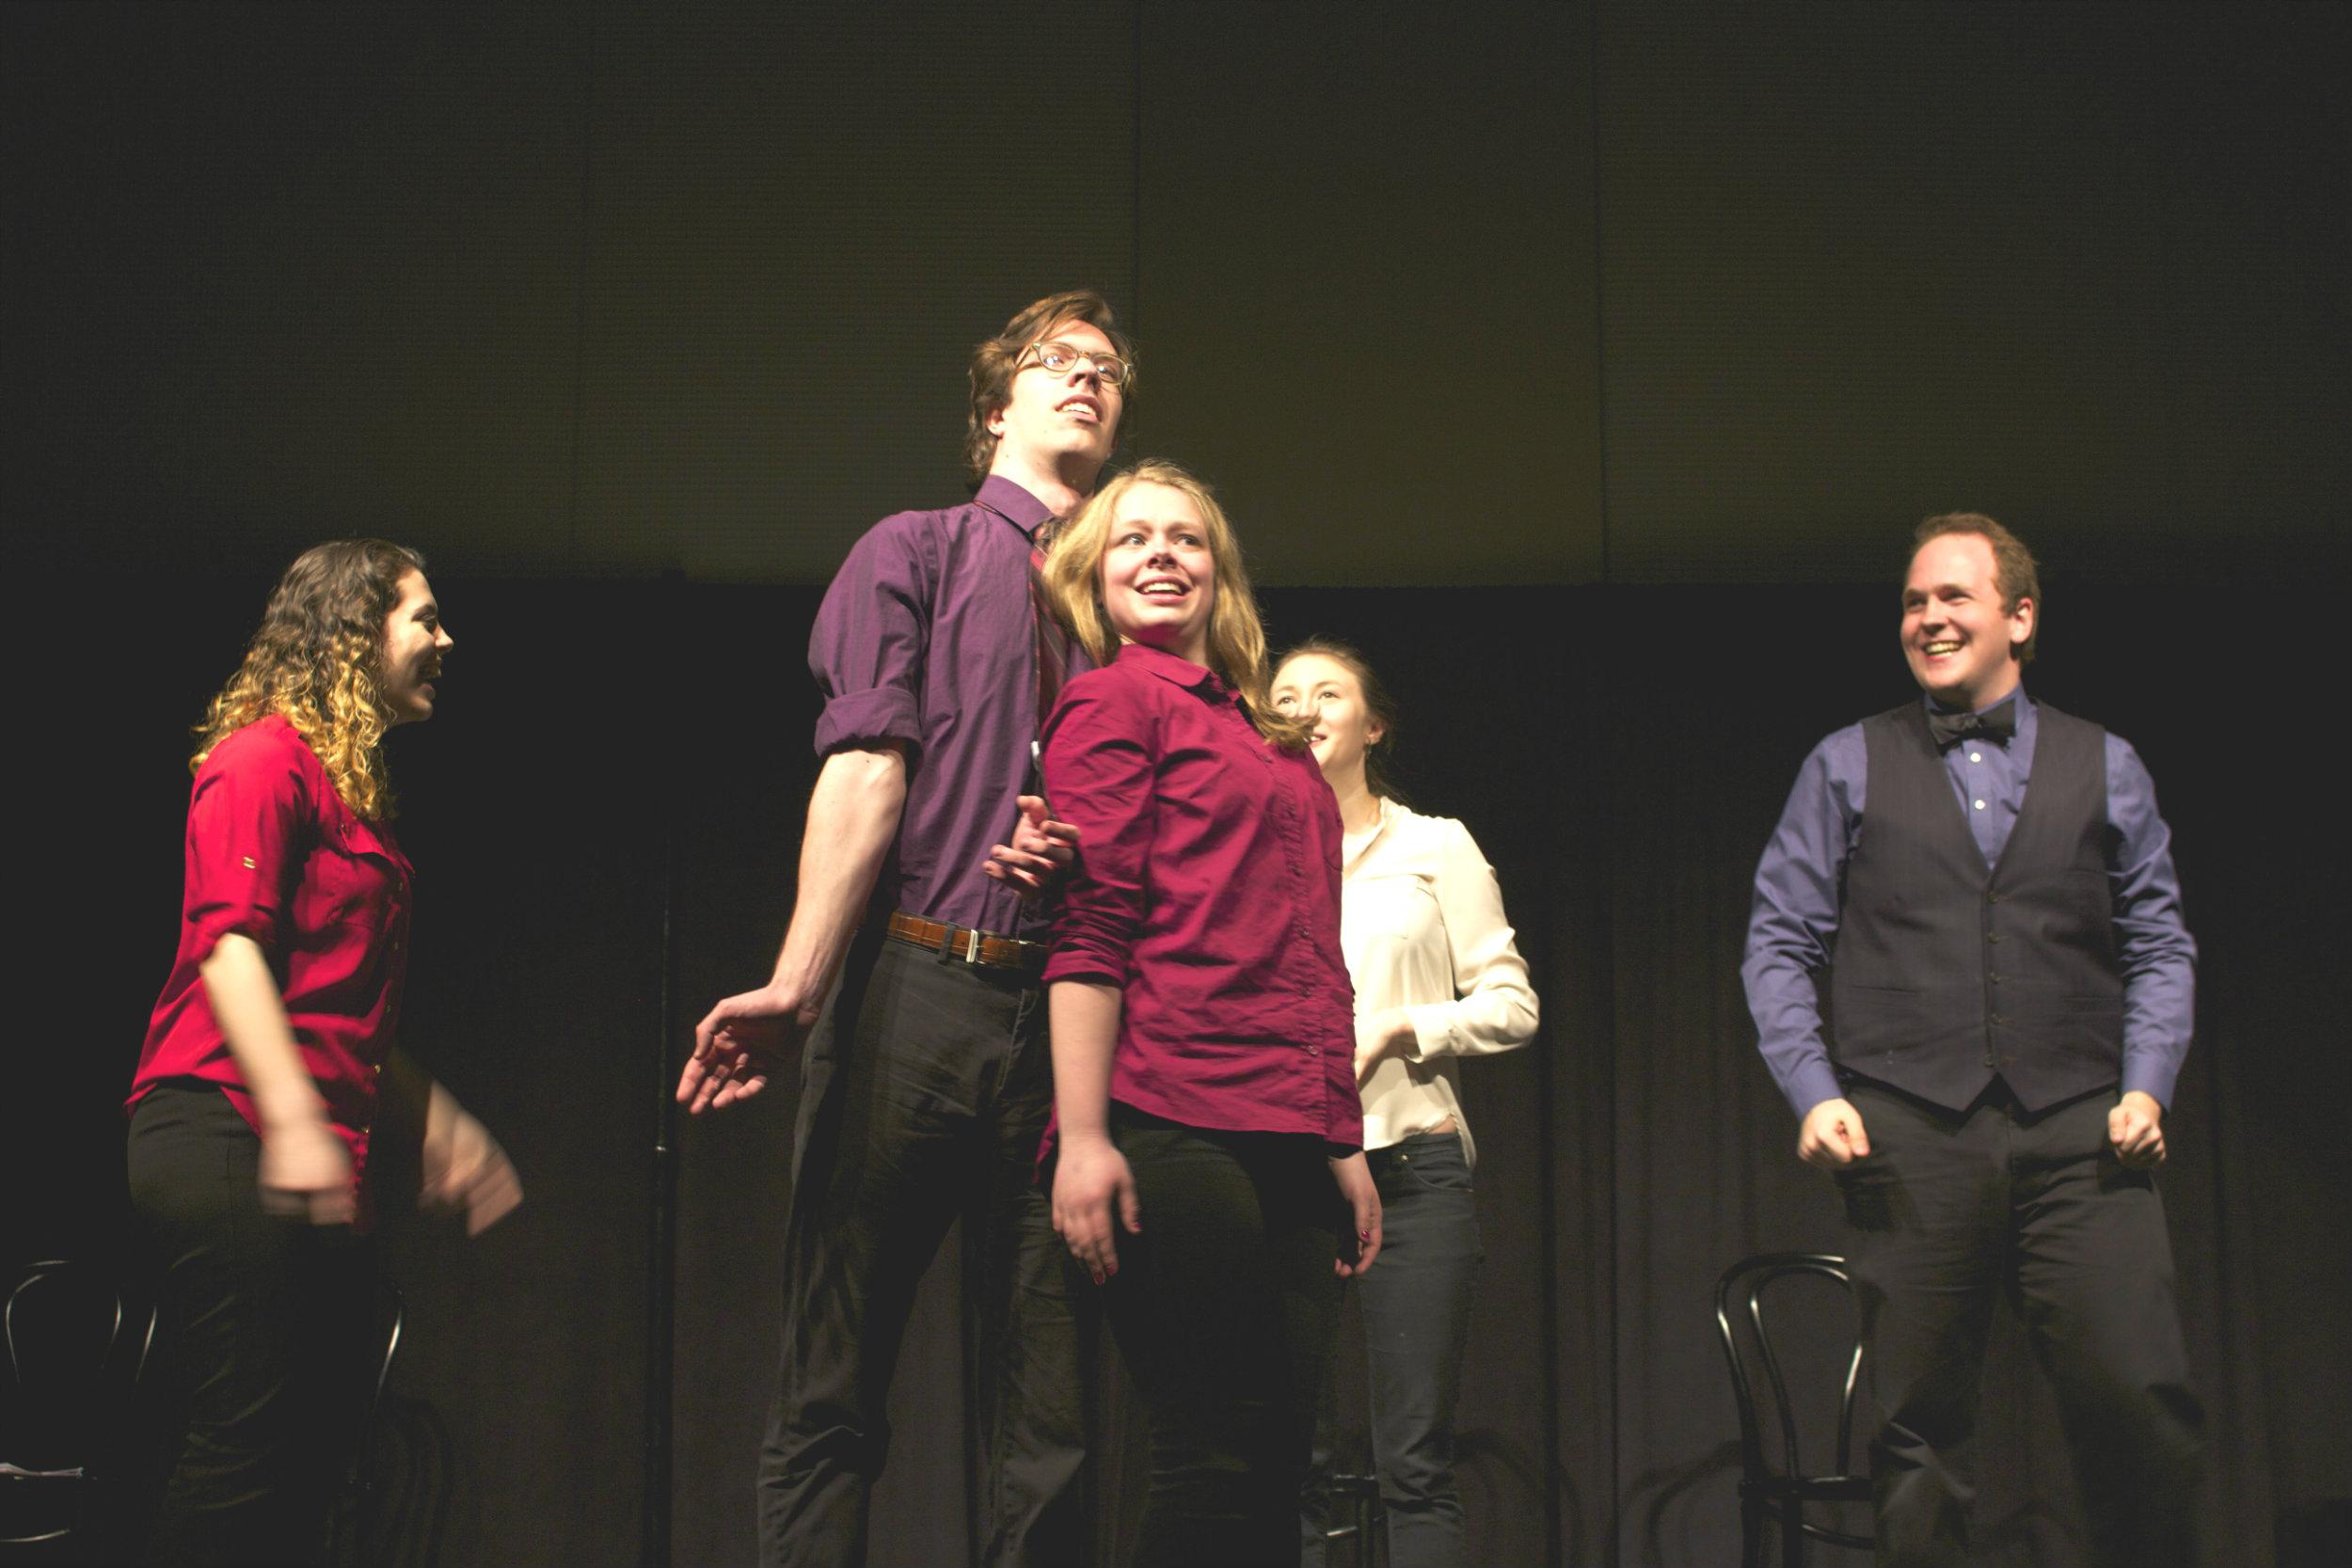 Improvment performed alongside other improv groups from around the state at the Lake Effect Improv Comedy Festival.